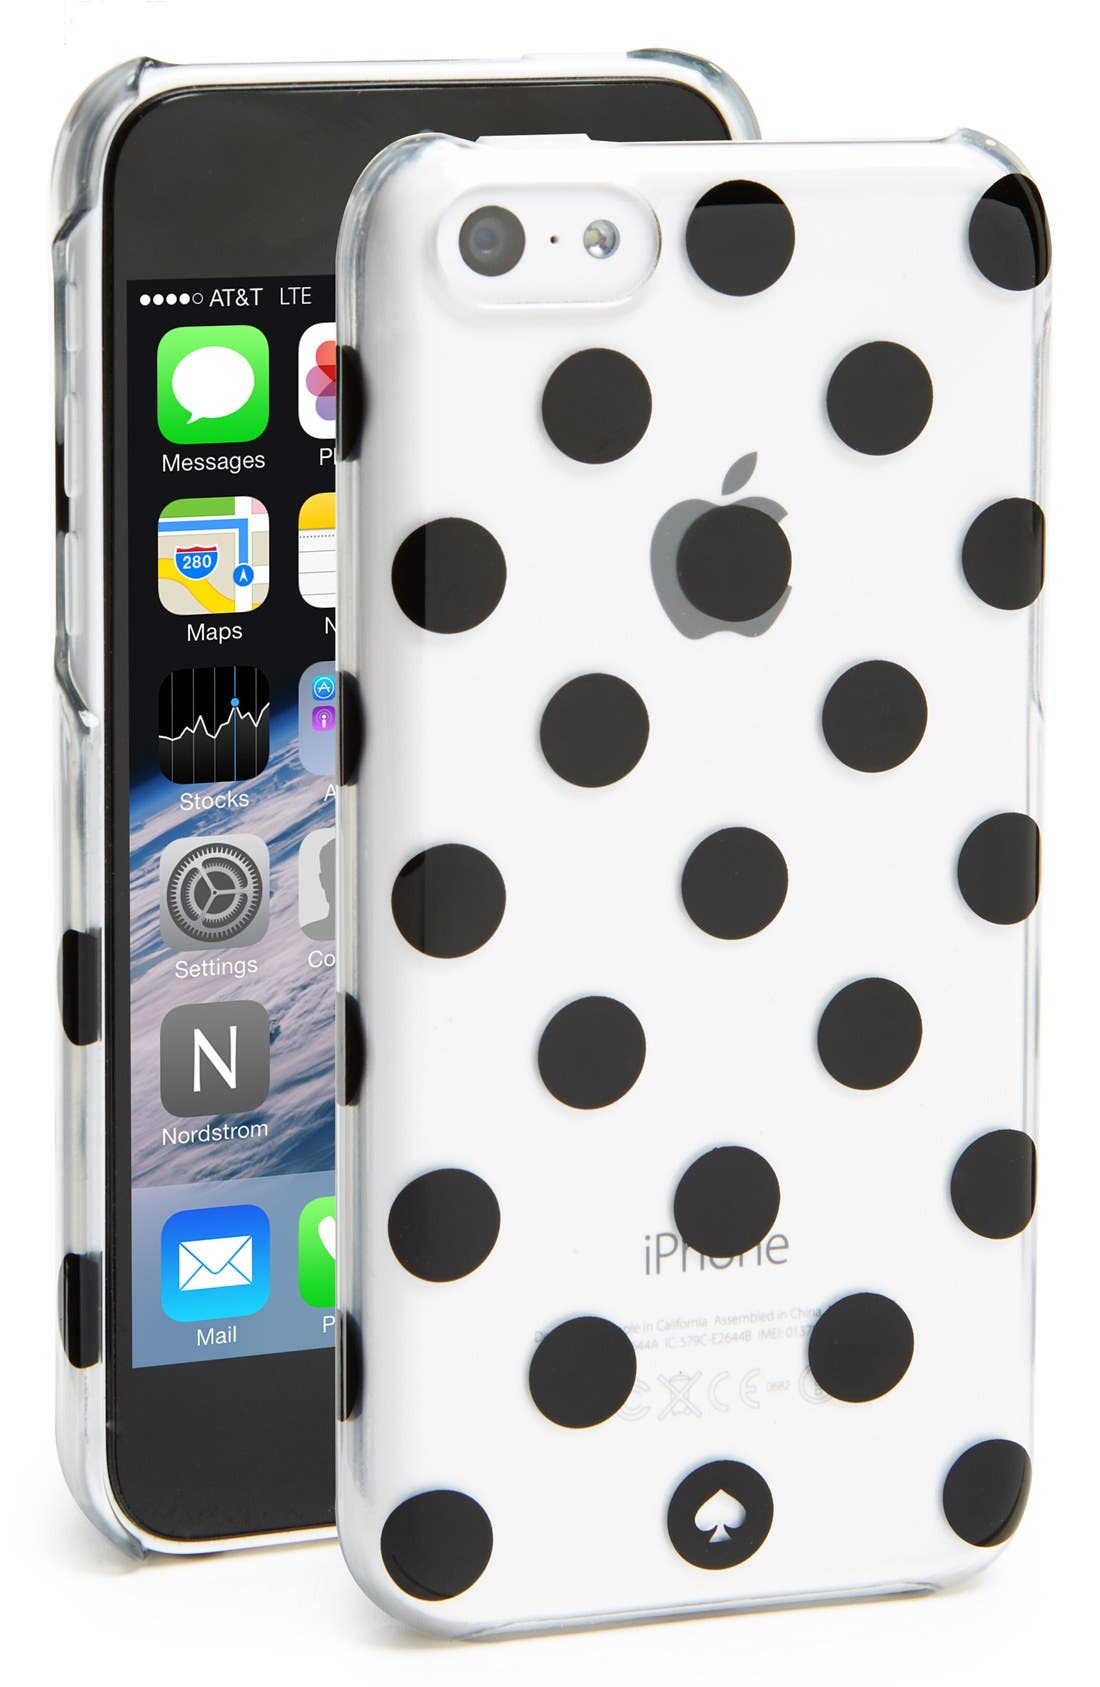 Main Image - kate spade new york 'la pavillion' iPhone 5c case